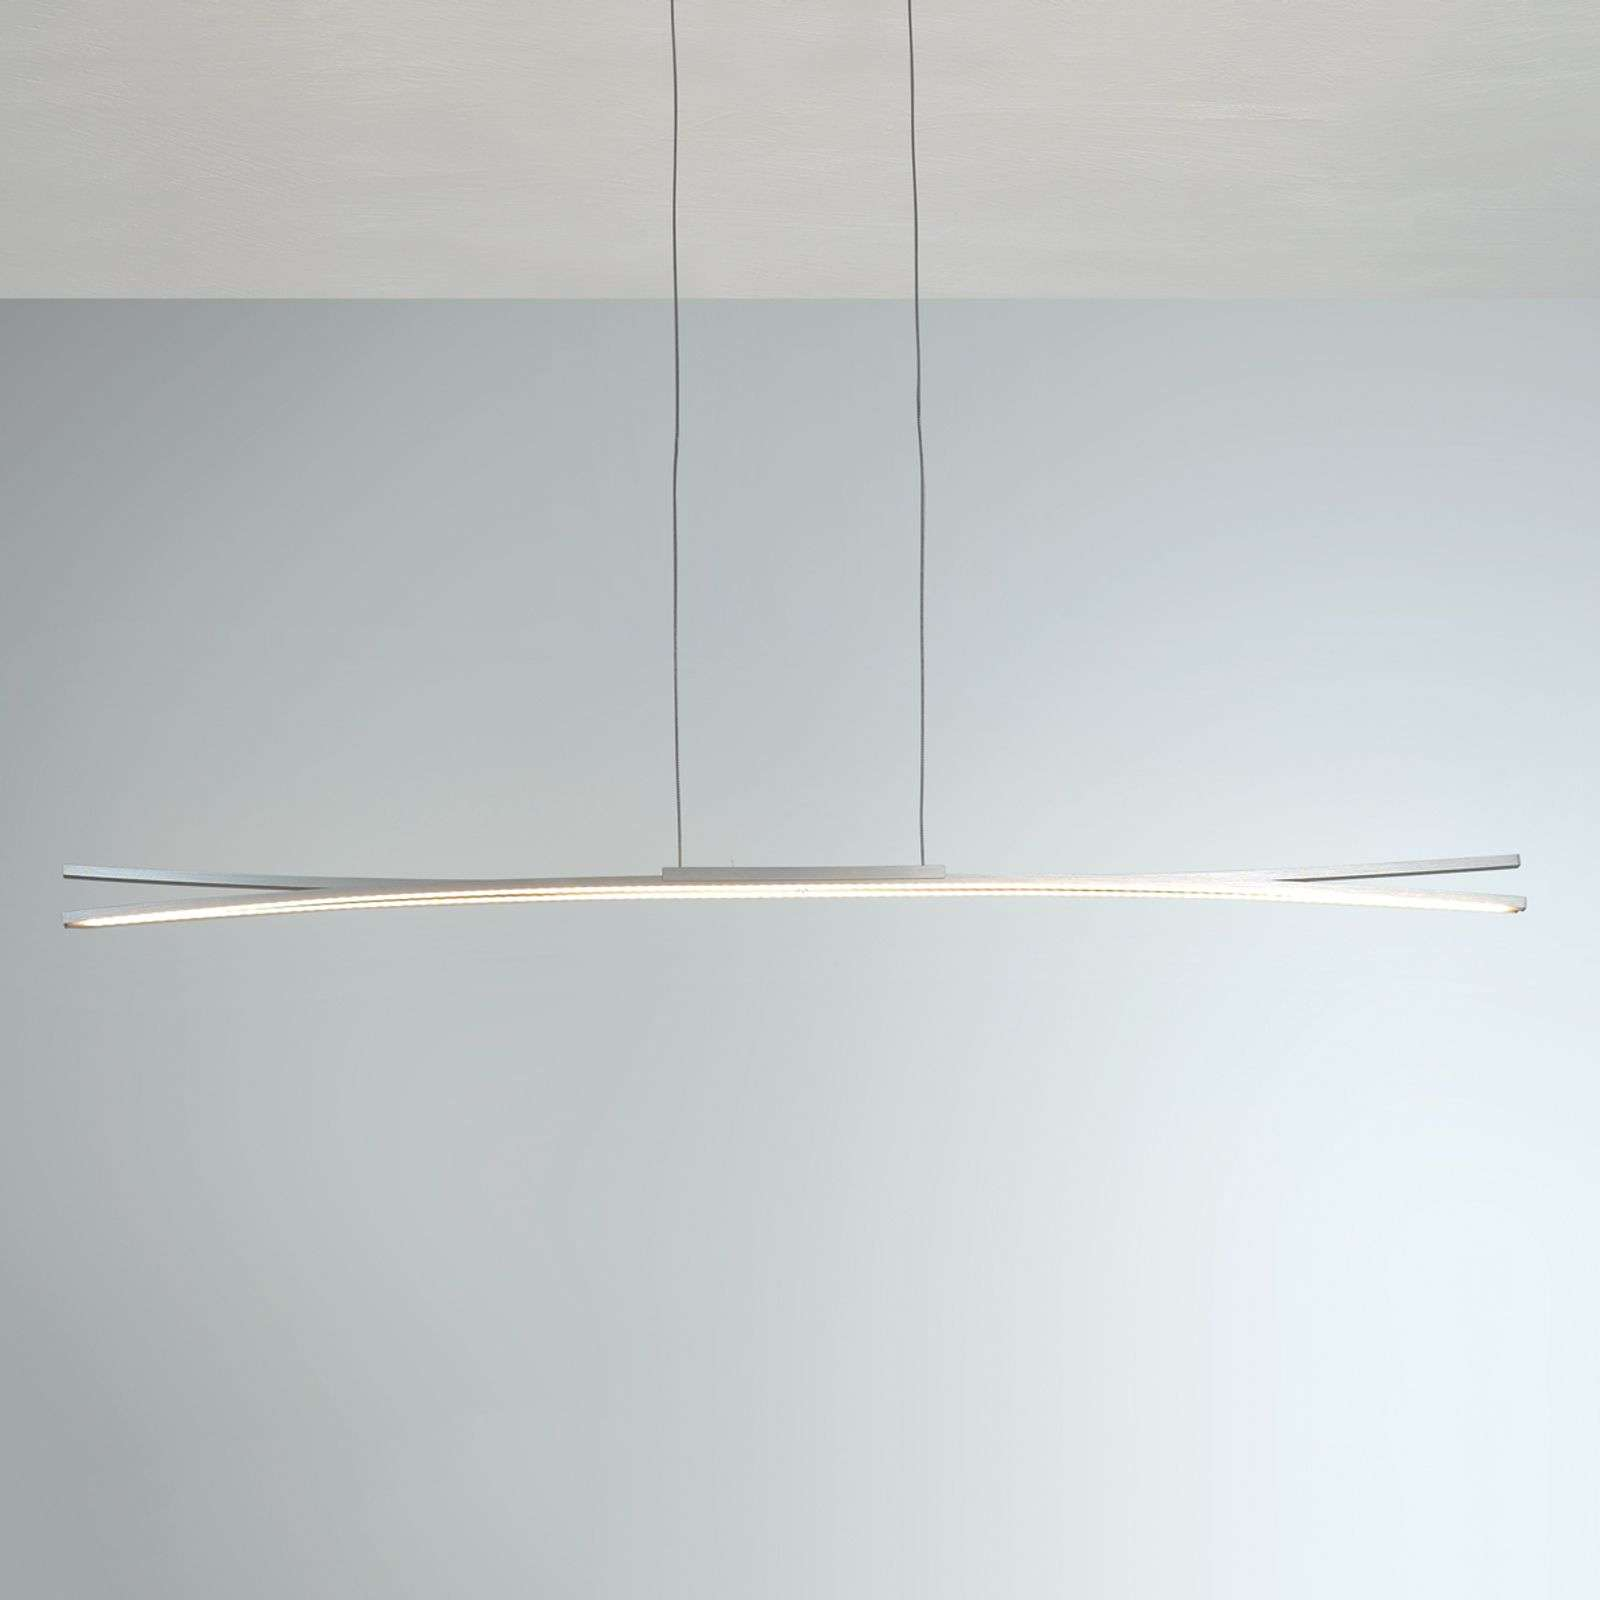 Suspension LED Convex, 120 cm avec bandes LED